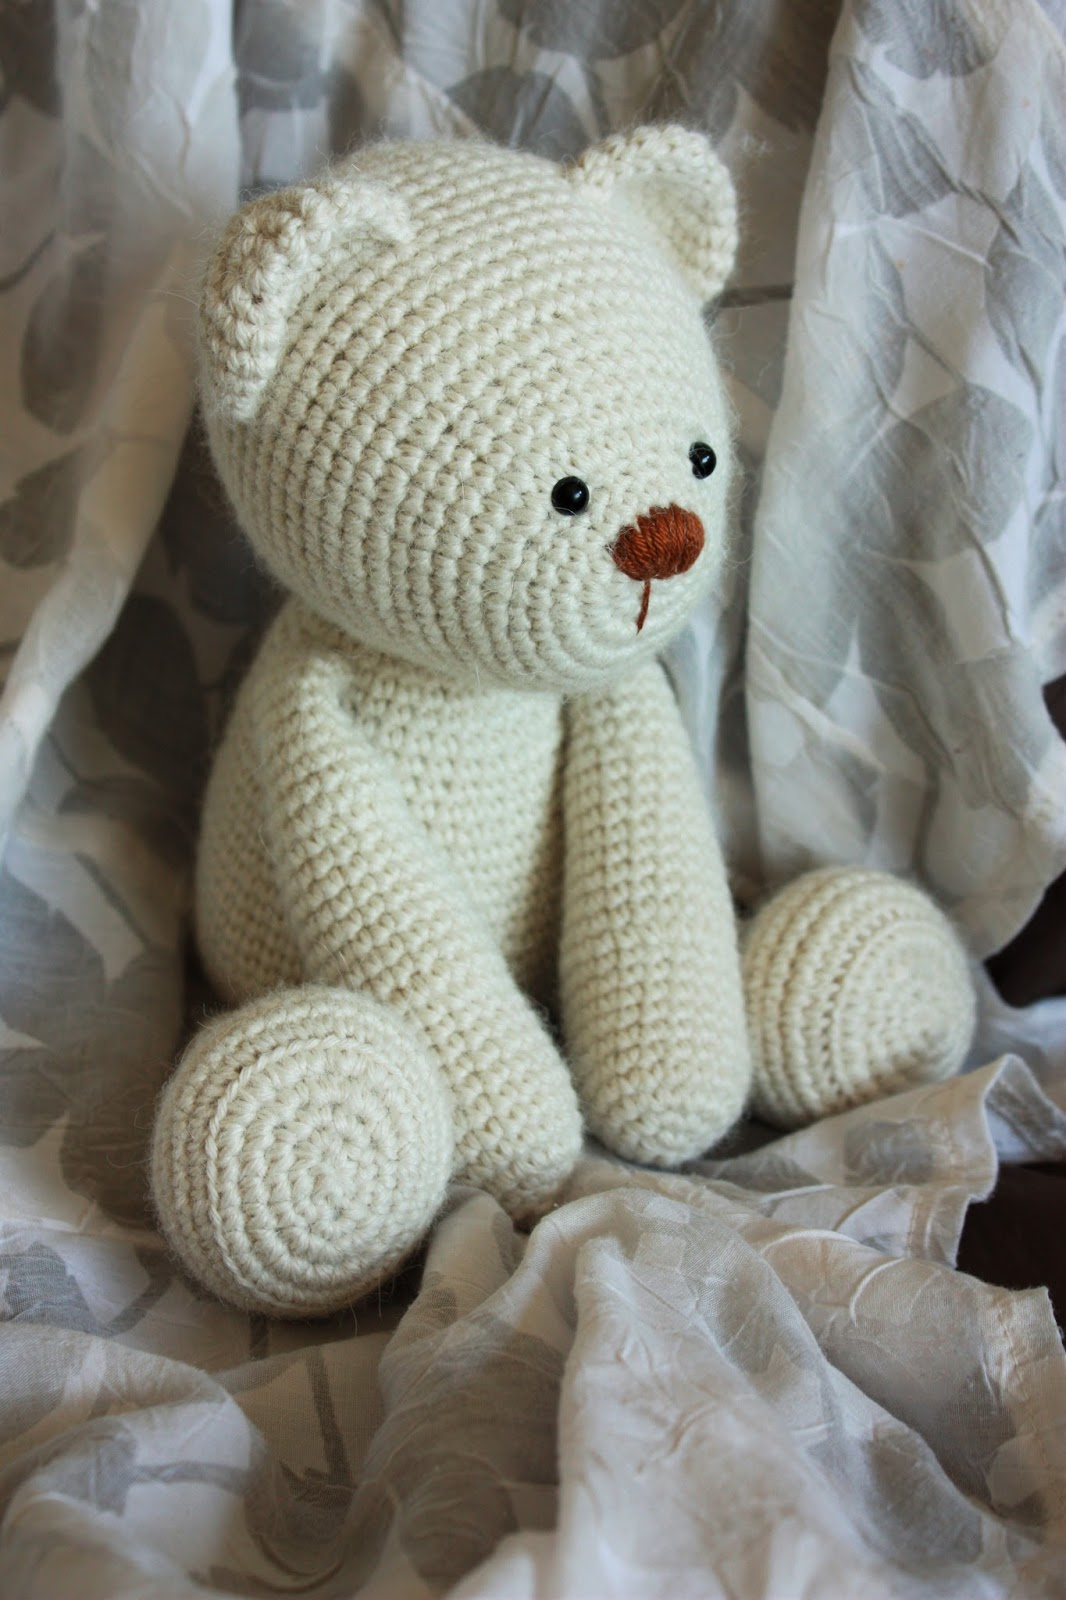 Amigurumi_crochet_patterns_teddy_bear.JP